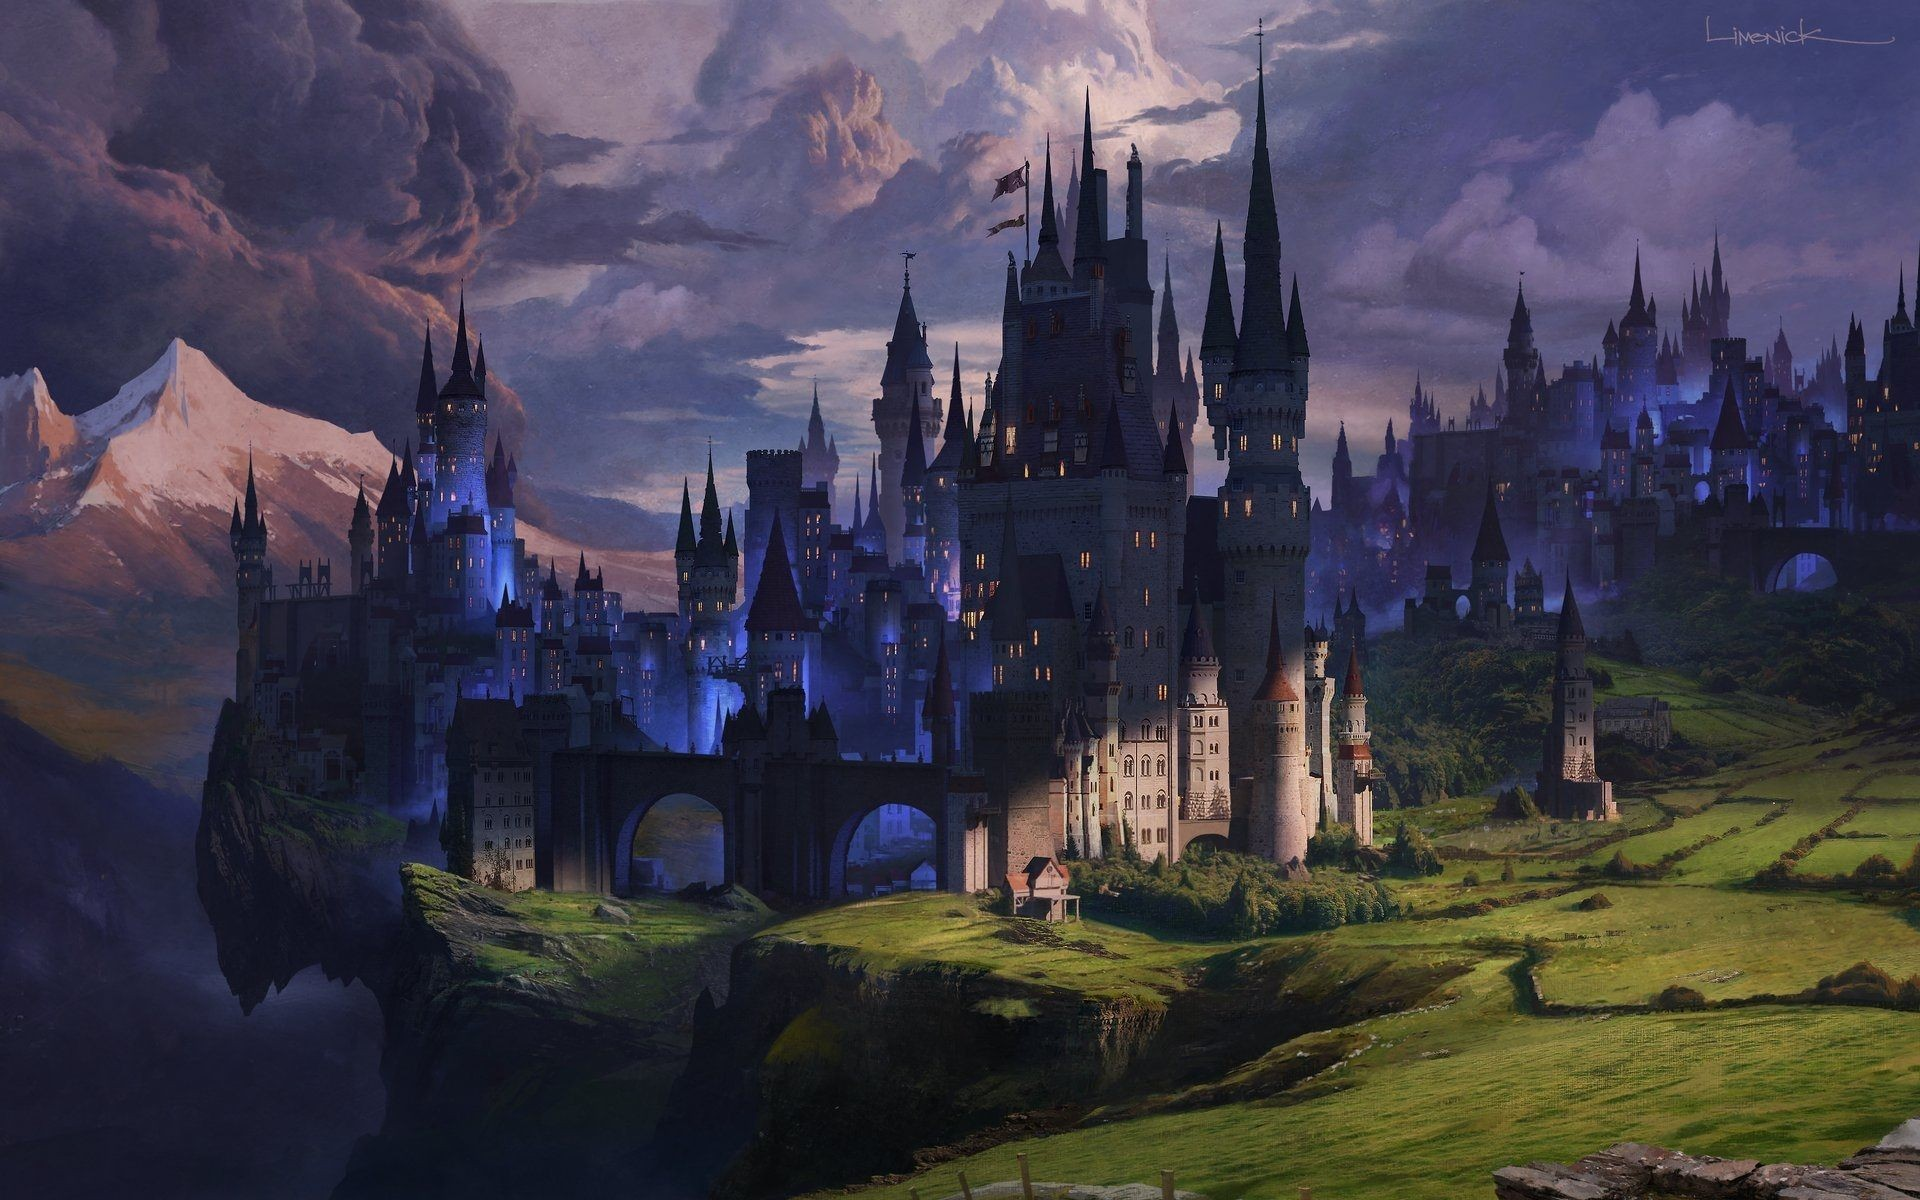 Fantasy Castle Wallpaper Download Free Awesome Wallpapers For